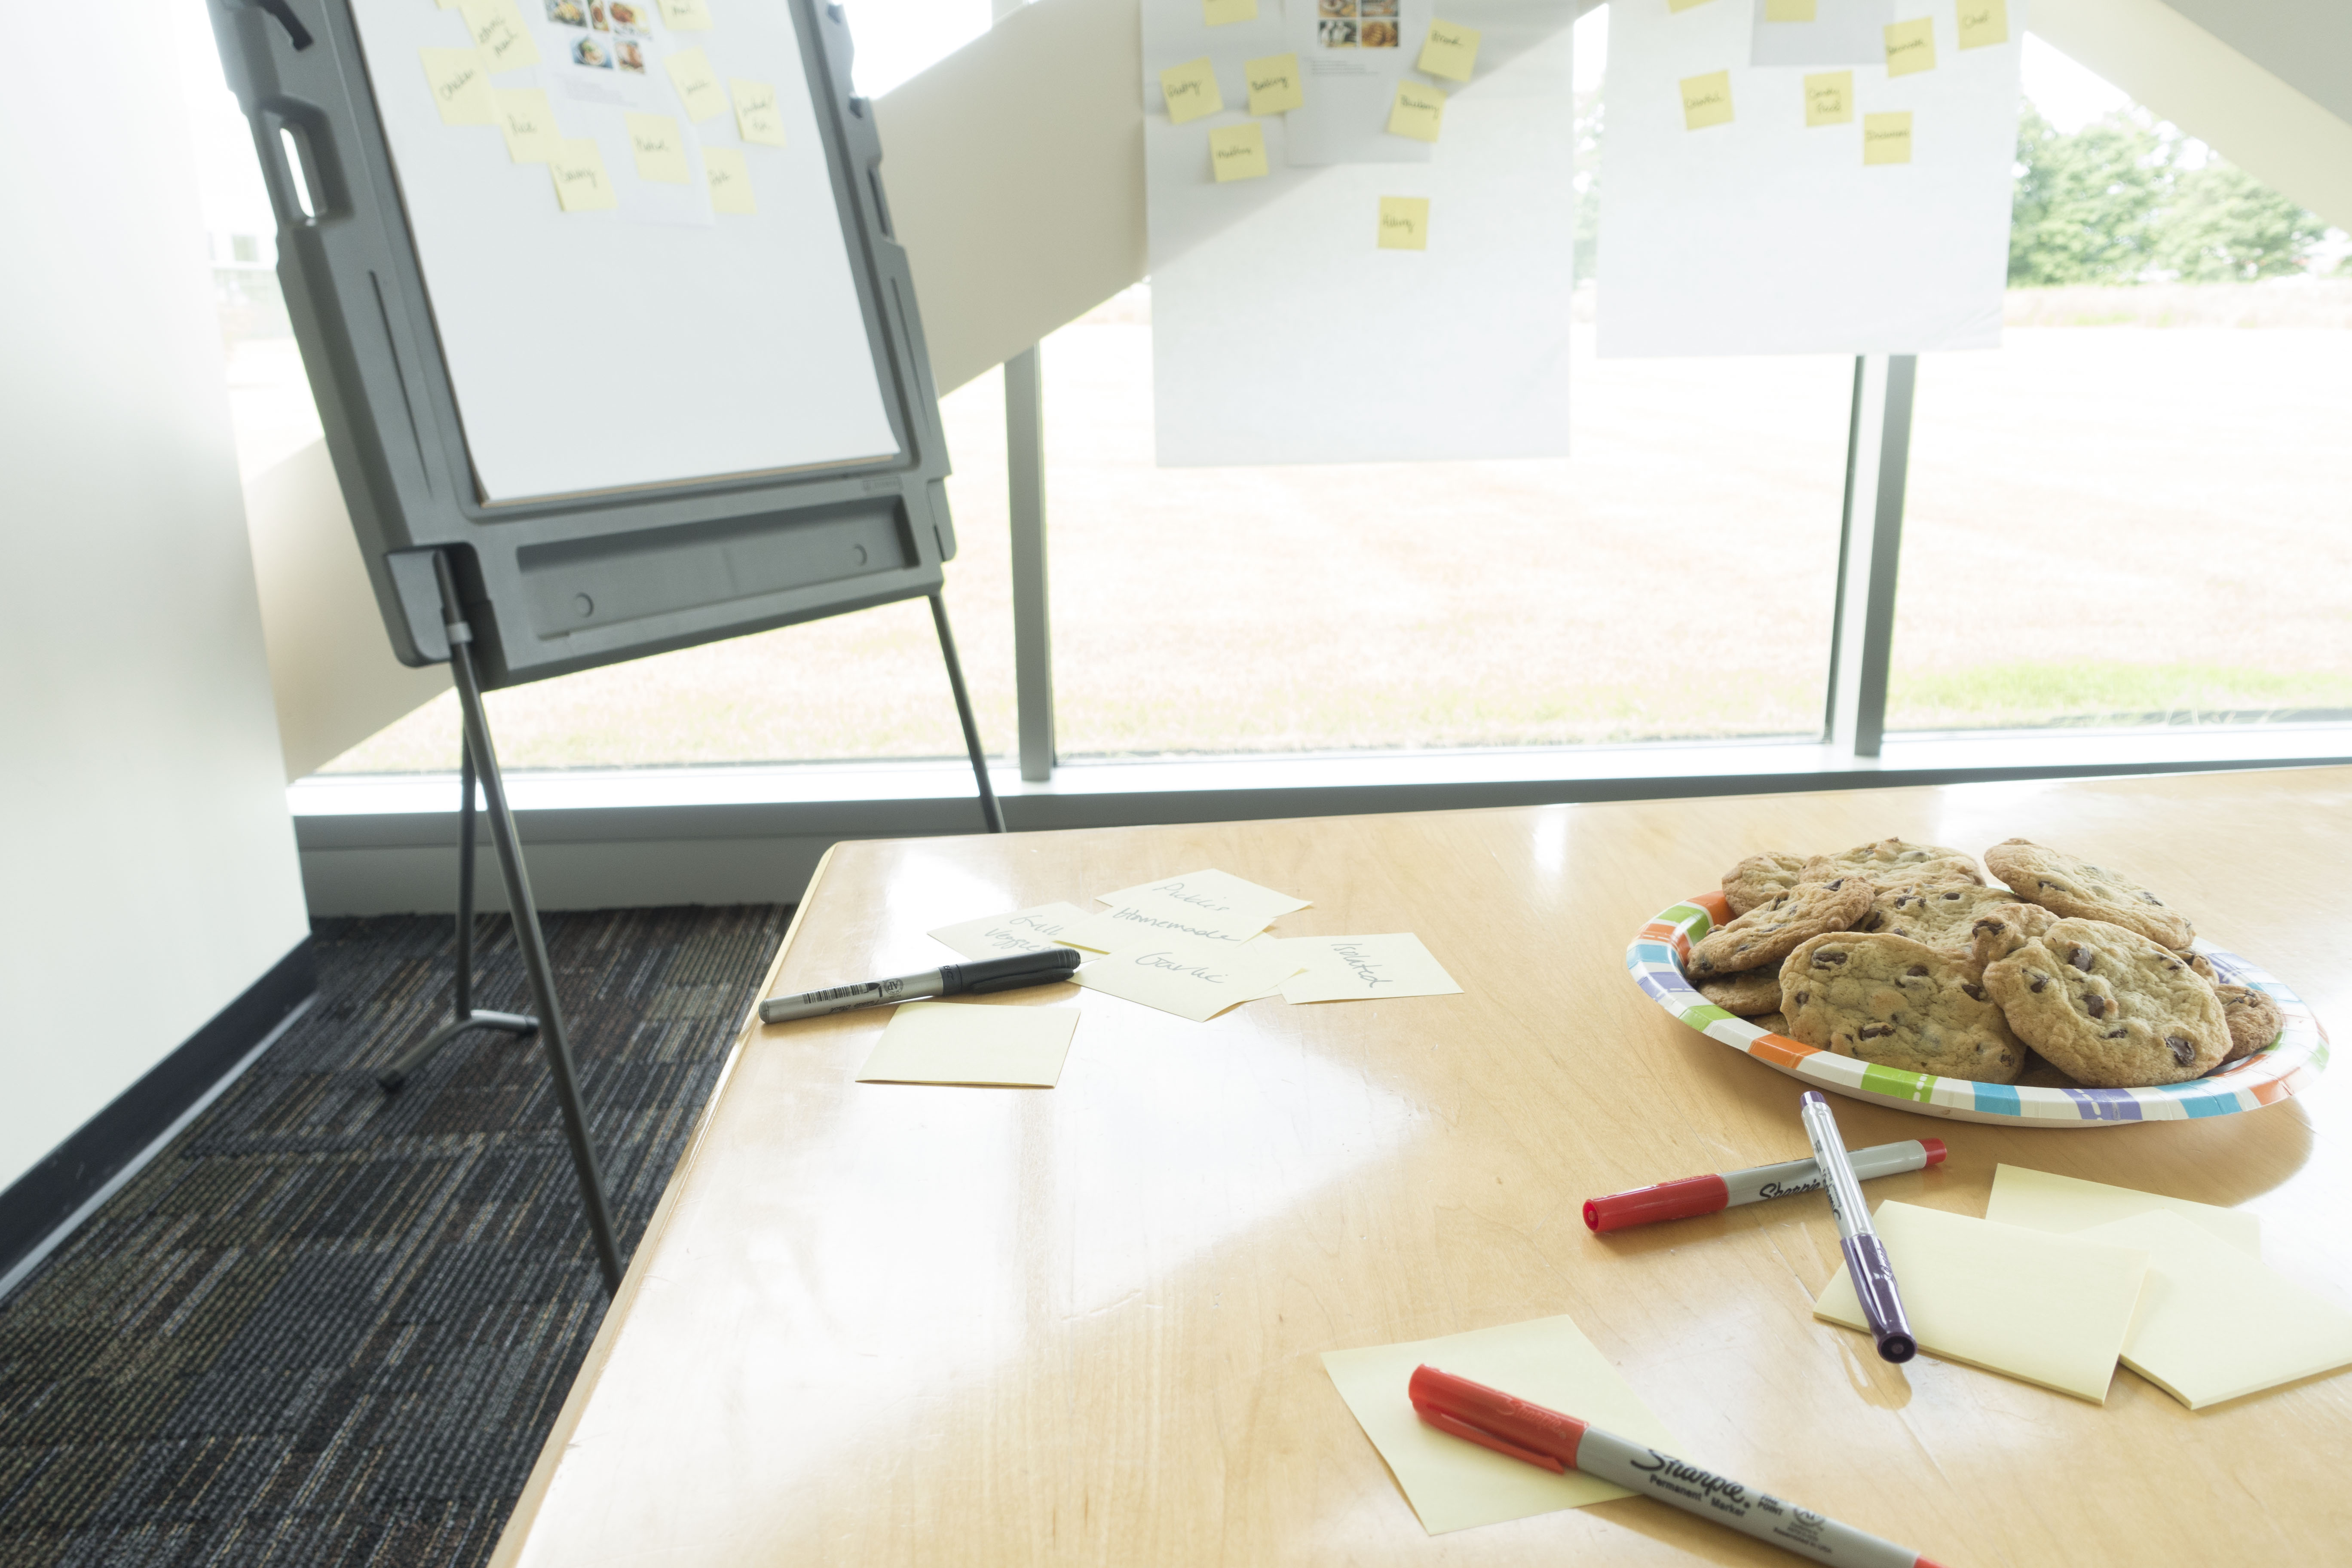 metadata brainstorm exercise with post-it notes and cookies